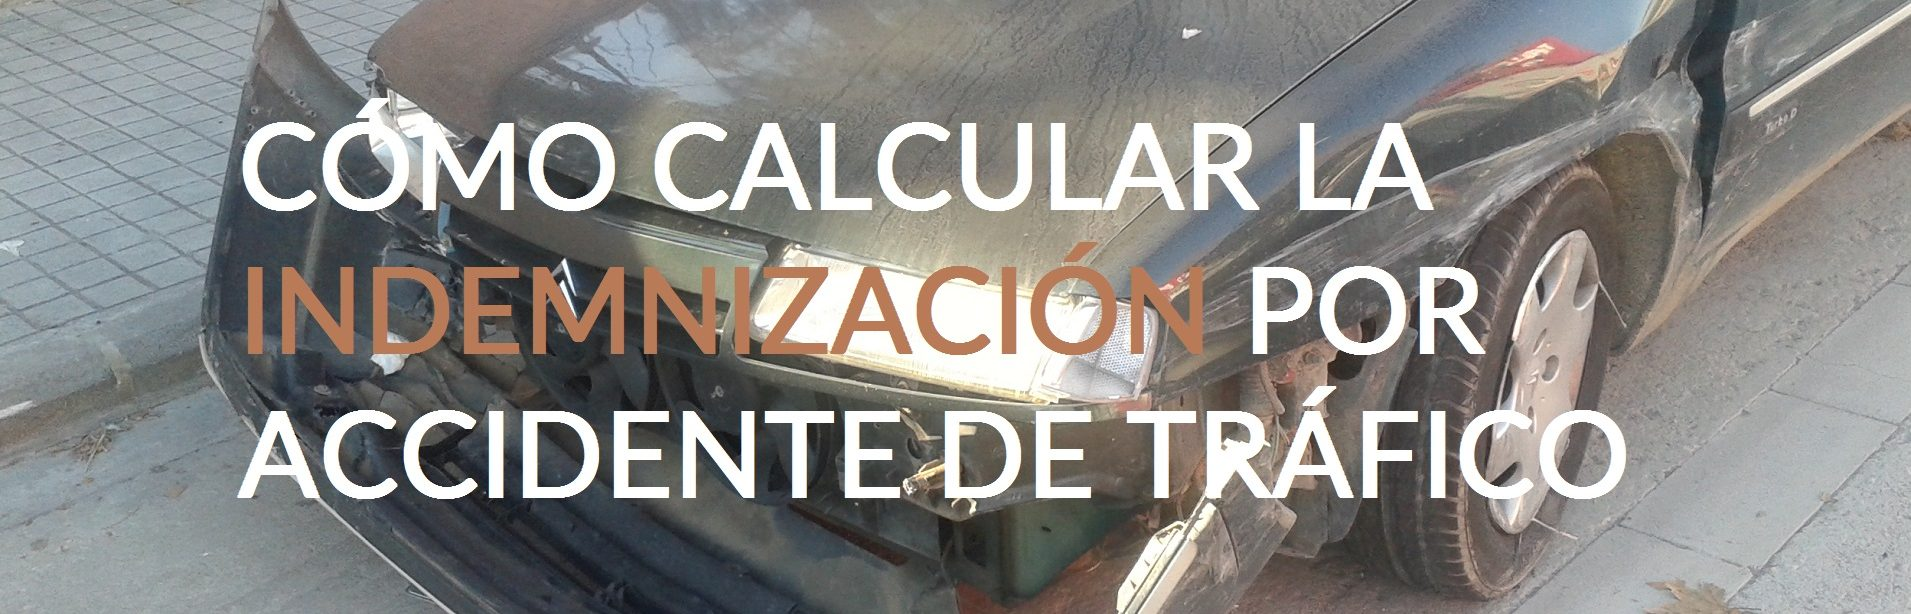 Calcular indemnización por accidente - Valencia Abogados Lares